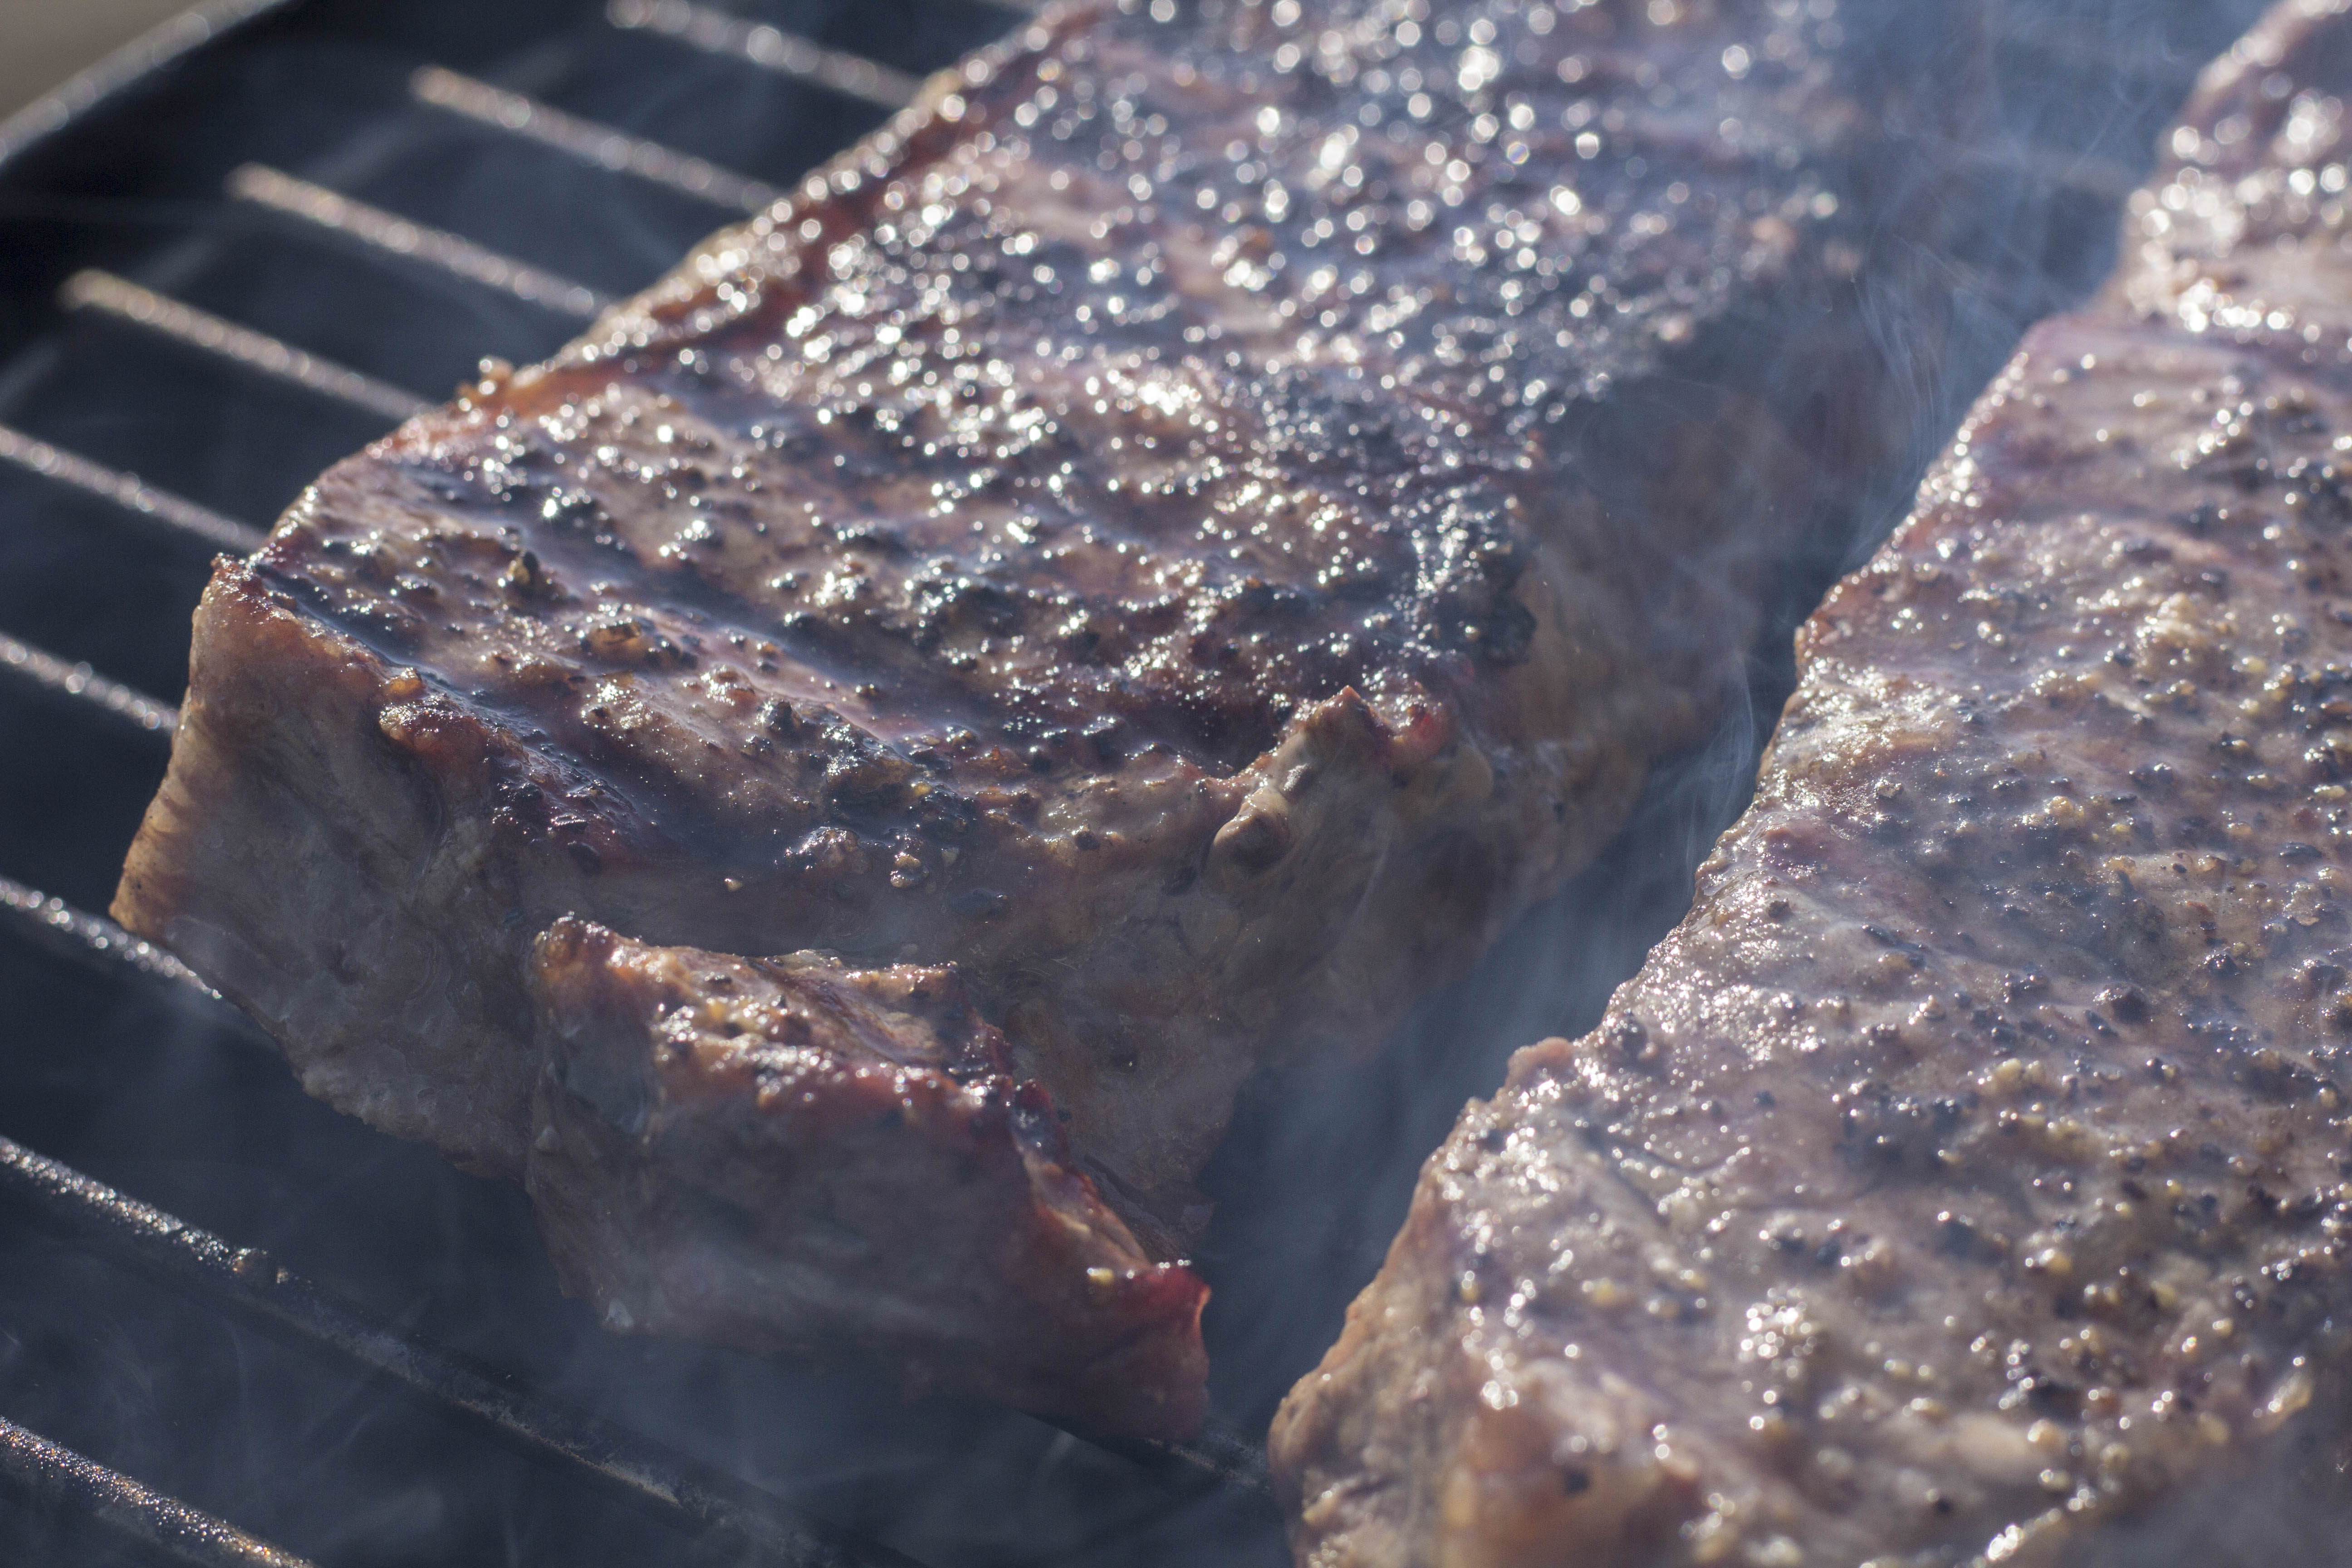 steaks smoking on a grill